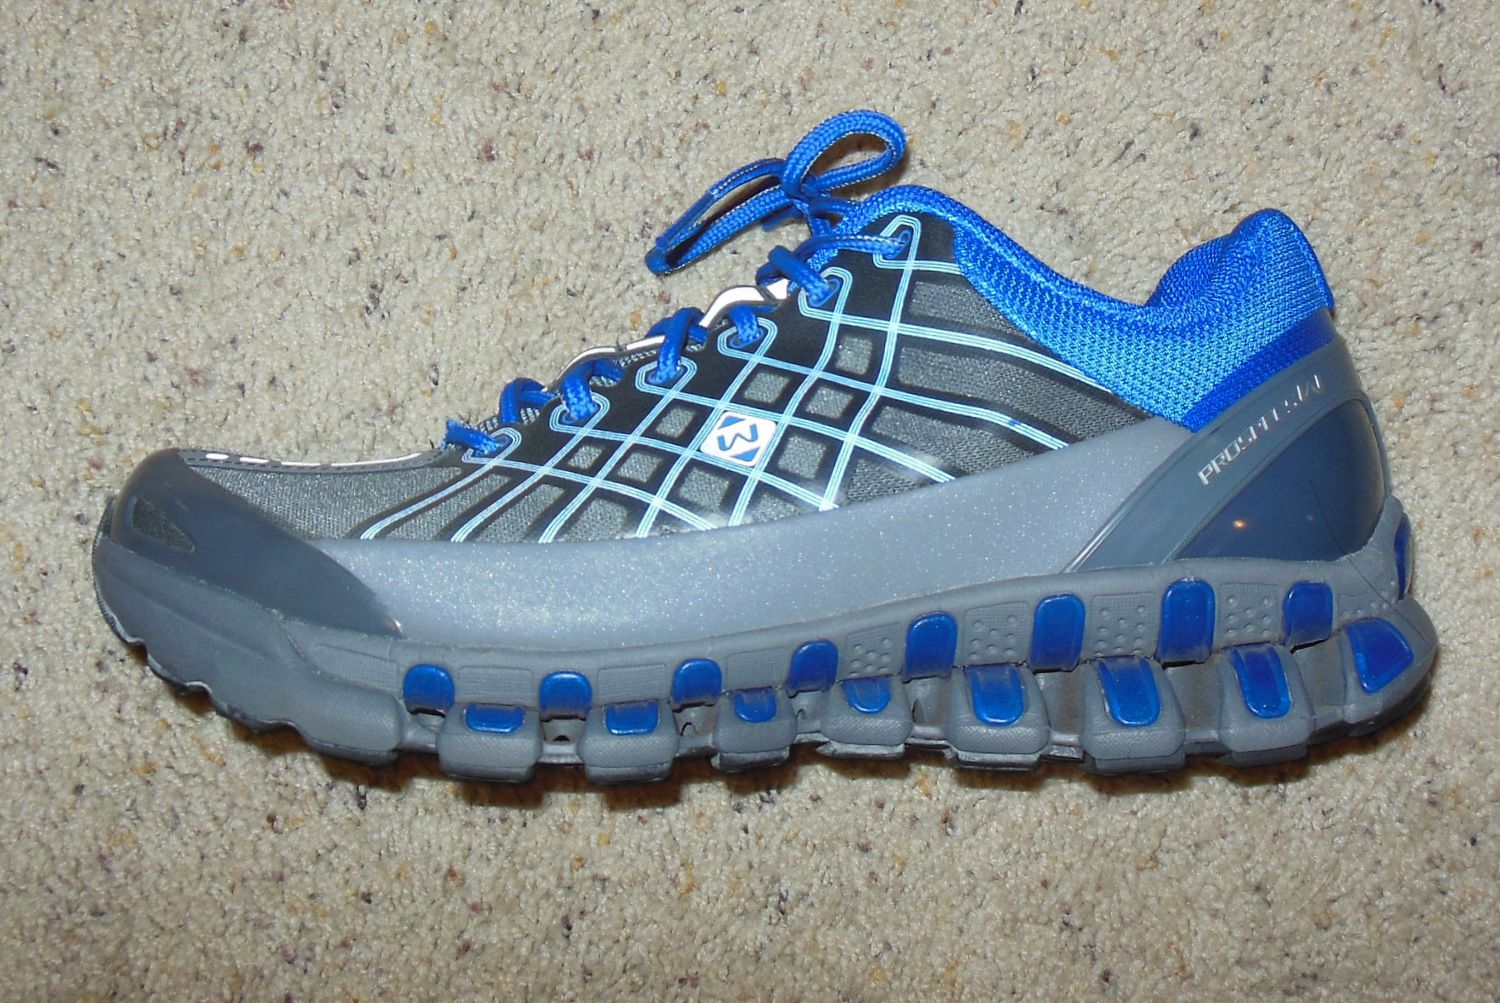 Prospecs Power Walk Shoes Review